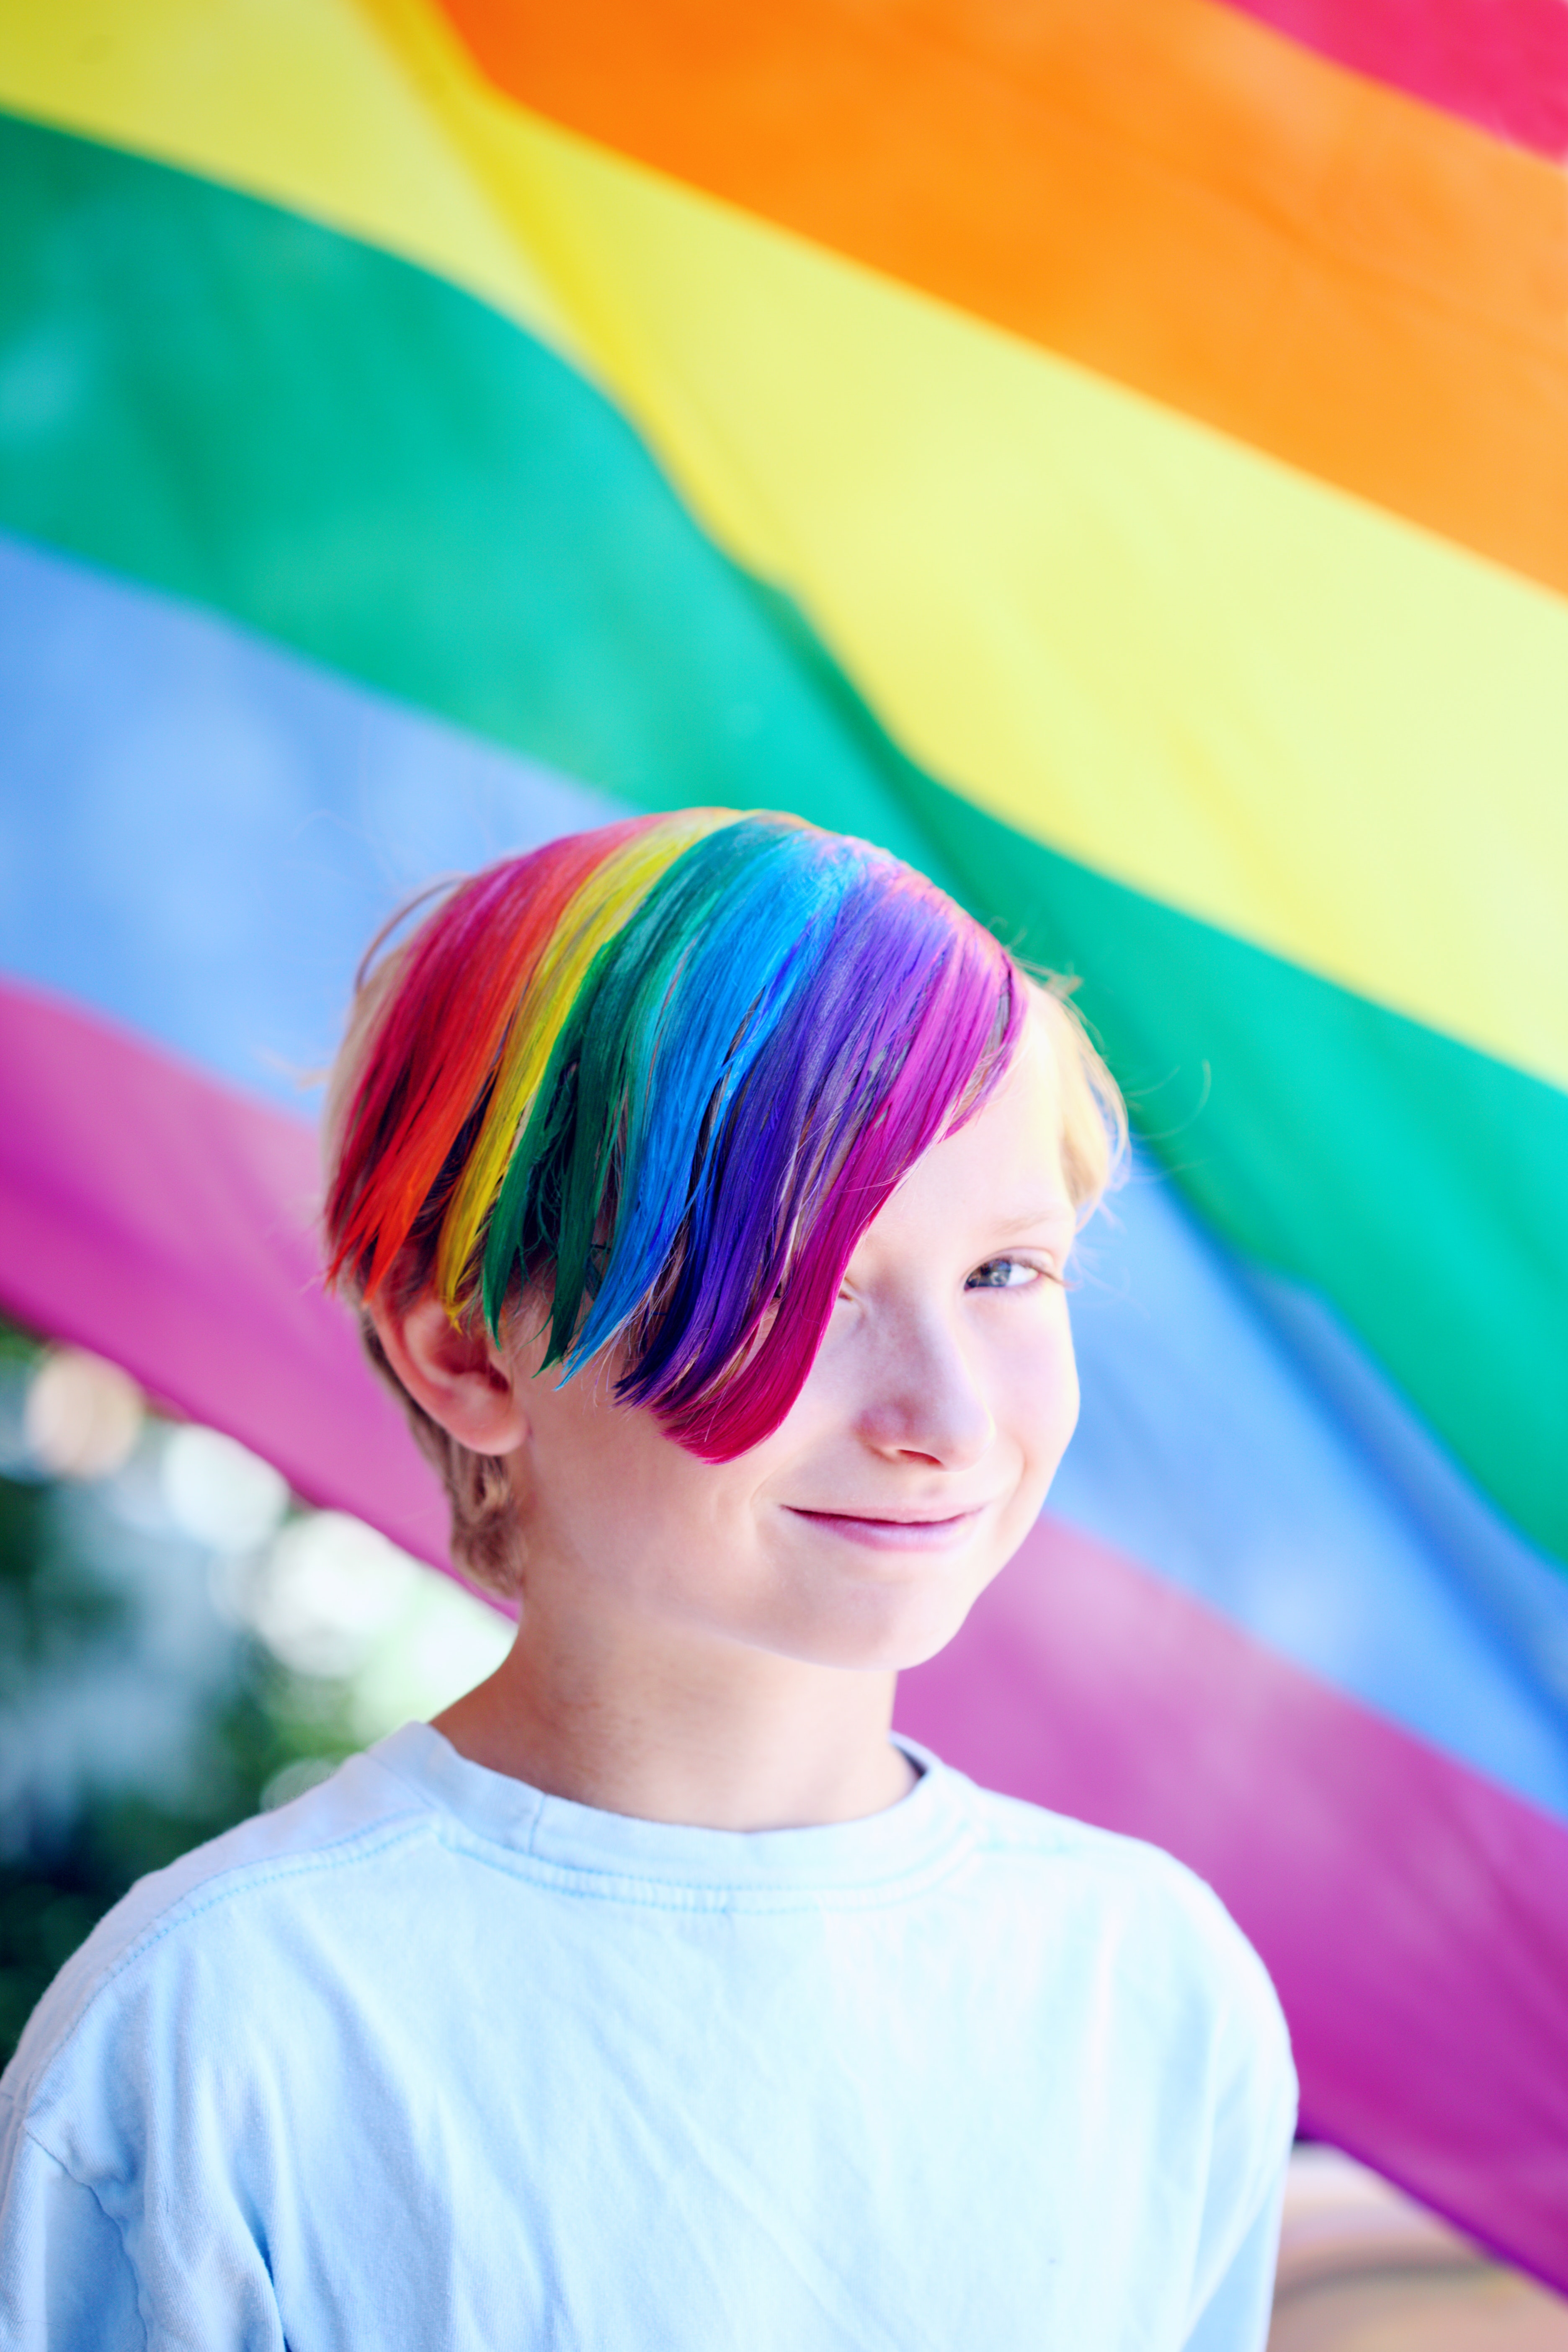 Boy Wearing White Shirt With Iridescent Hair Color Infront ...